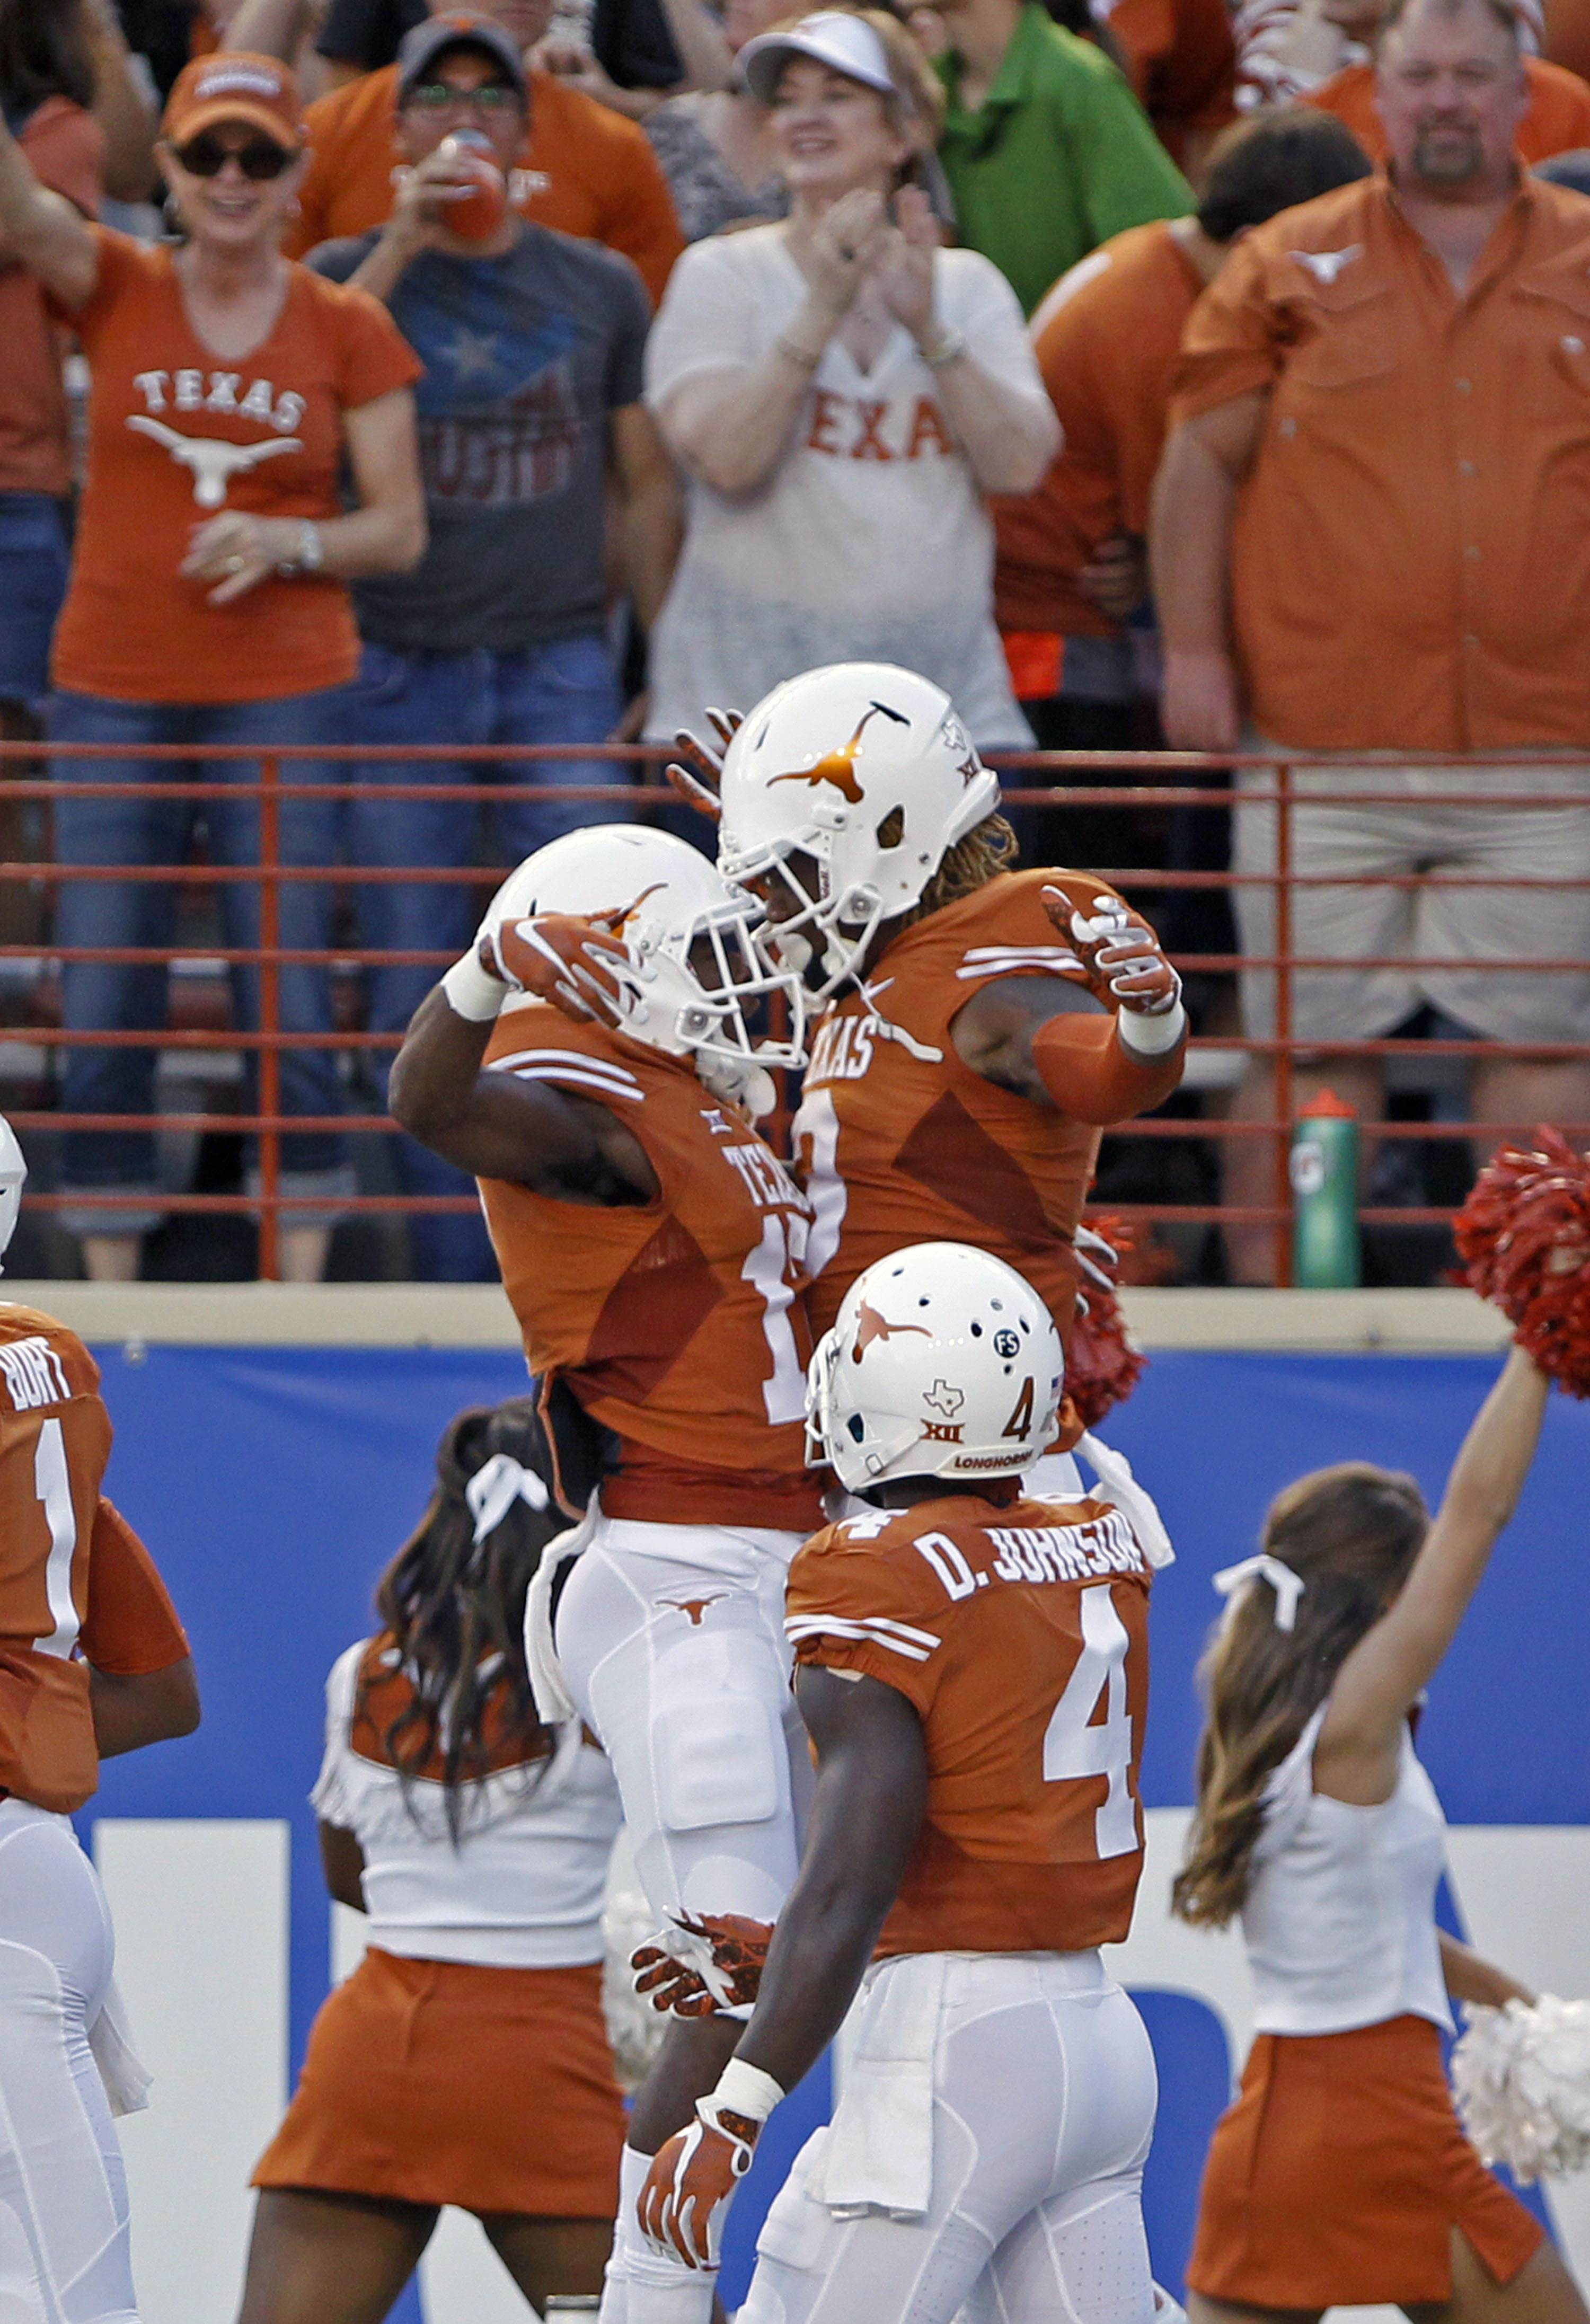 Texas wide receiver Armanti Foreman, right, celebrates his touchdown reception with teammate Ryan Newsome, left, during the first half of an NCAA college football game against Rice, Saturday, Sept. 12, 2015, in Austin, Texas. (AP Photo/Michael Thomas)